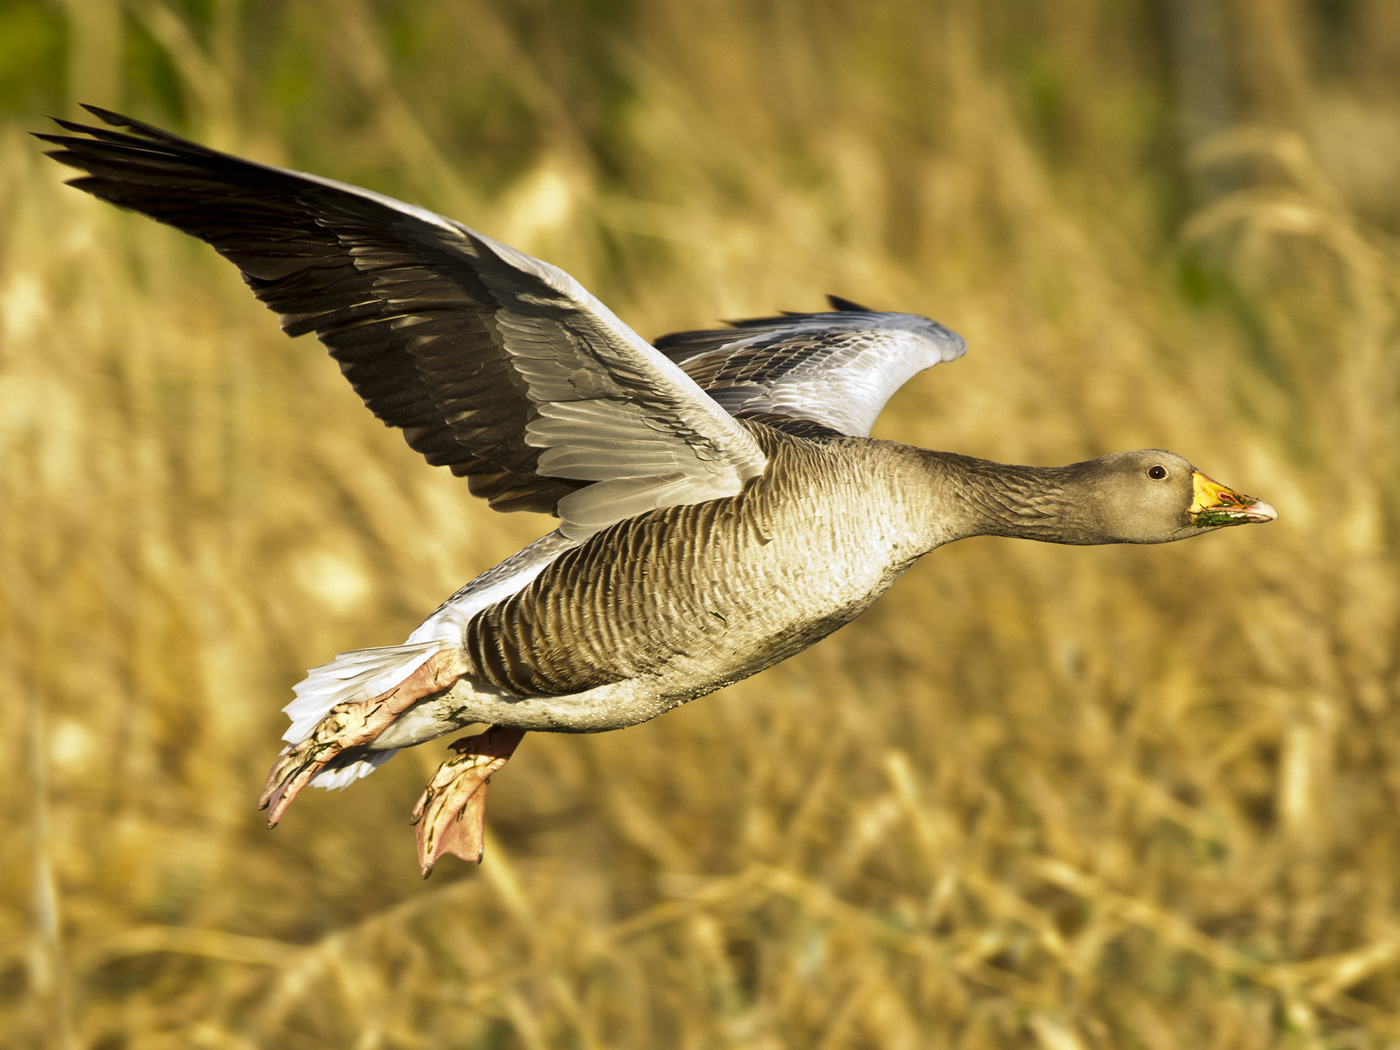 111 Goose in flight.jpg